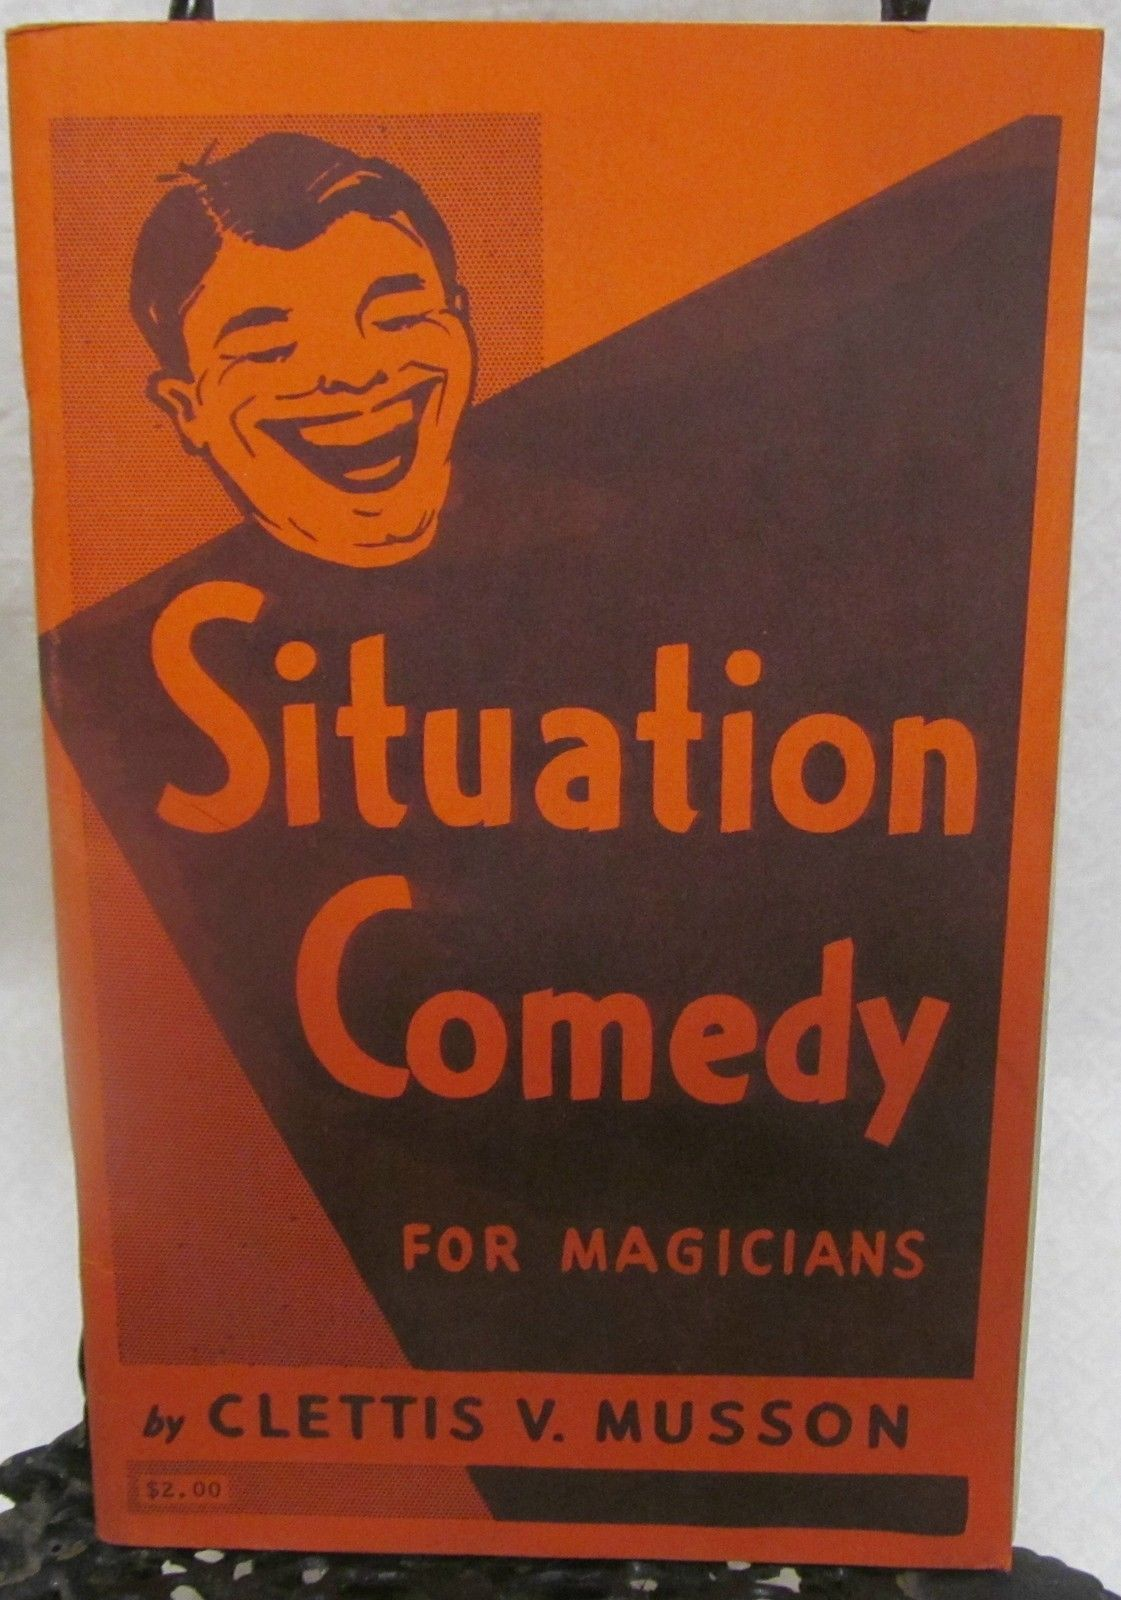 Situation Comedy for Magicians by Musson, Clettis